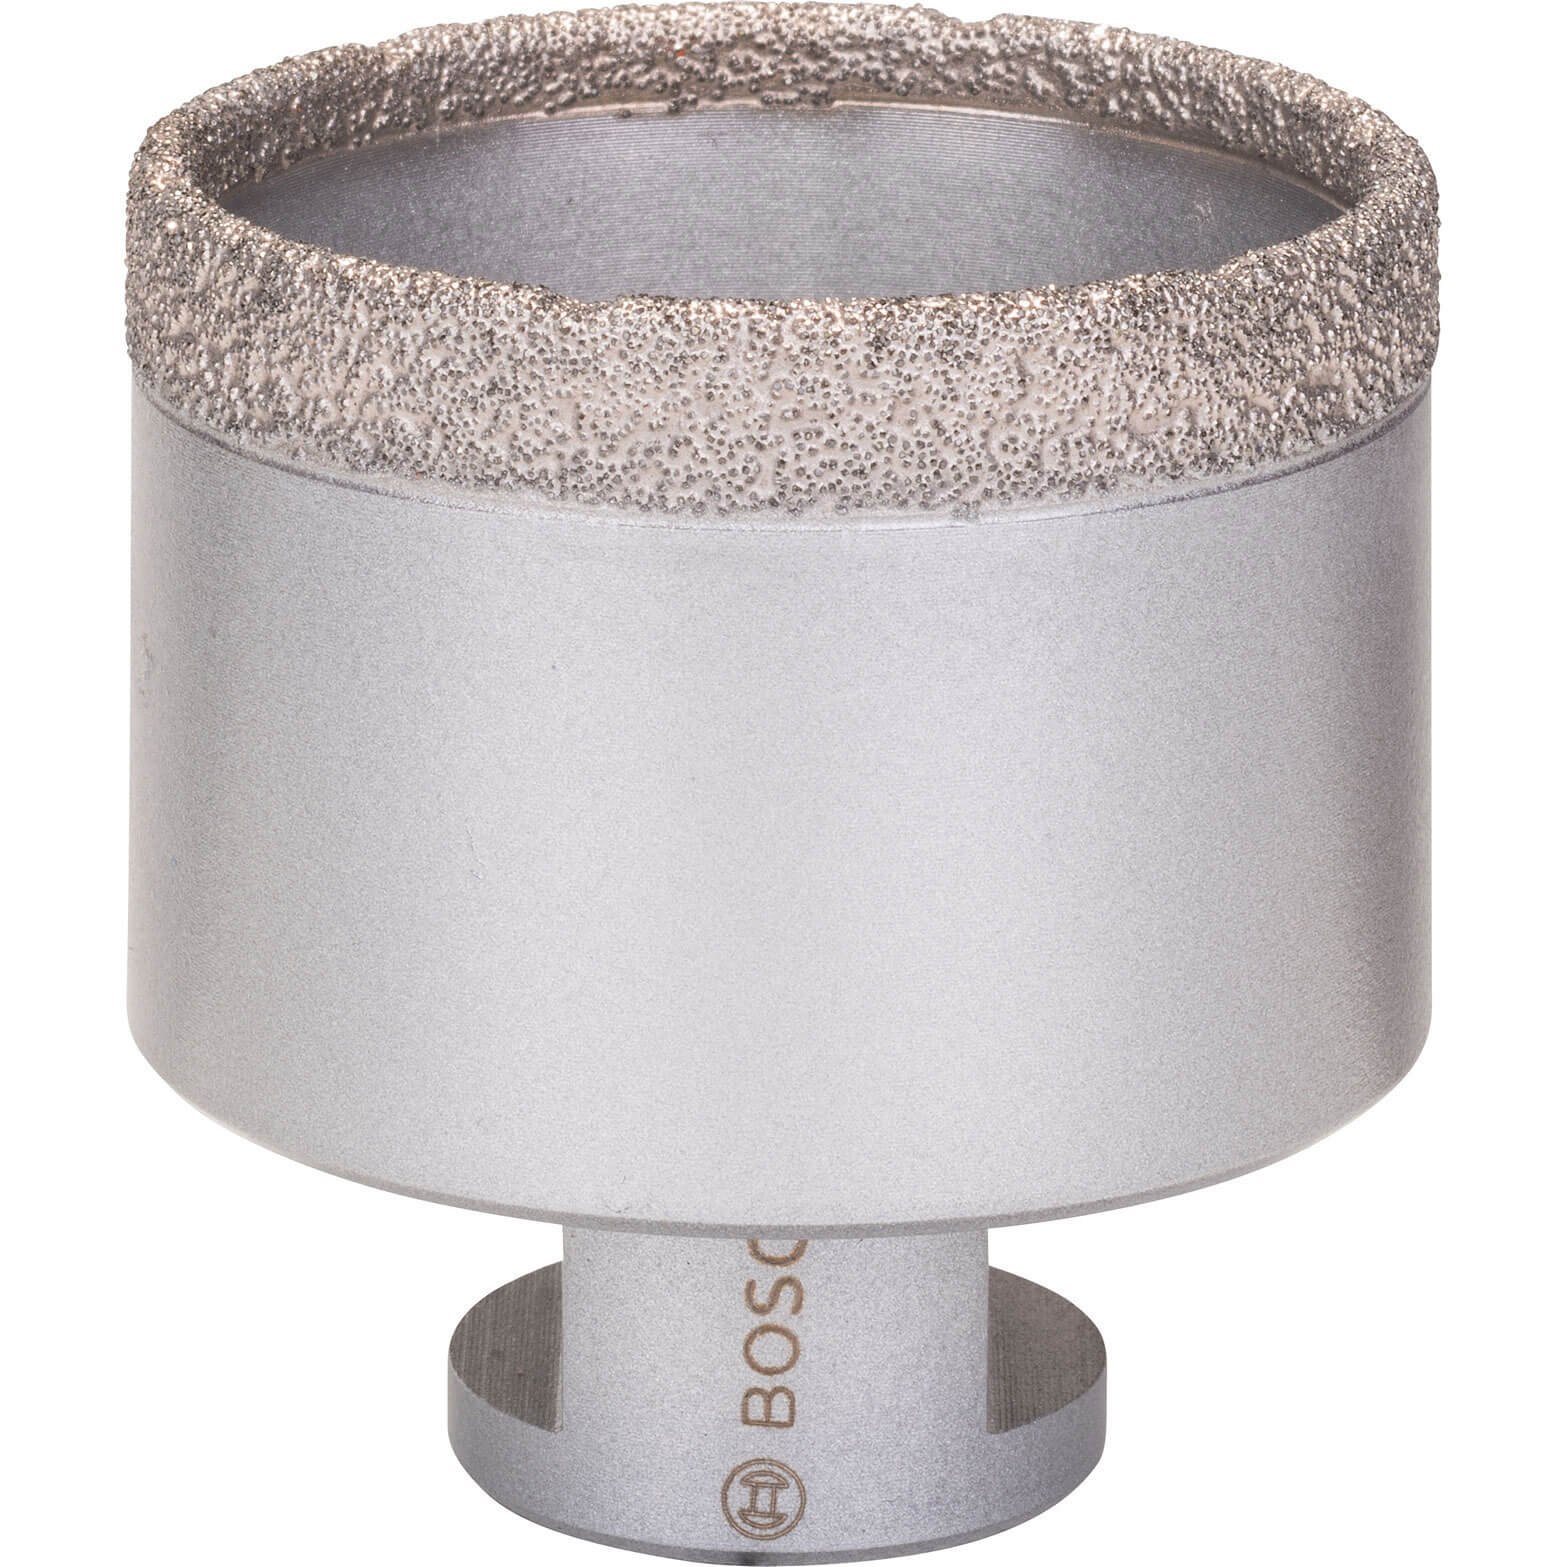 Bosch Angle Grinder Dry Diamond Hole Cutter For Ceramics 60mm